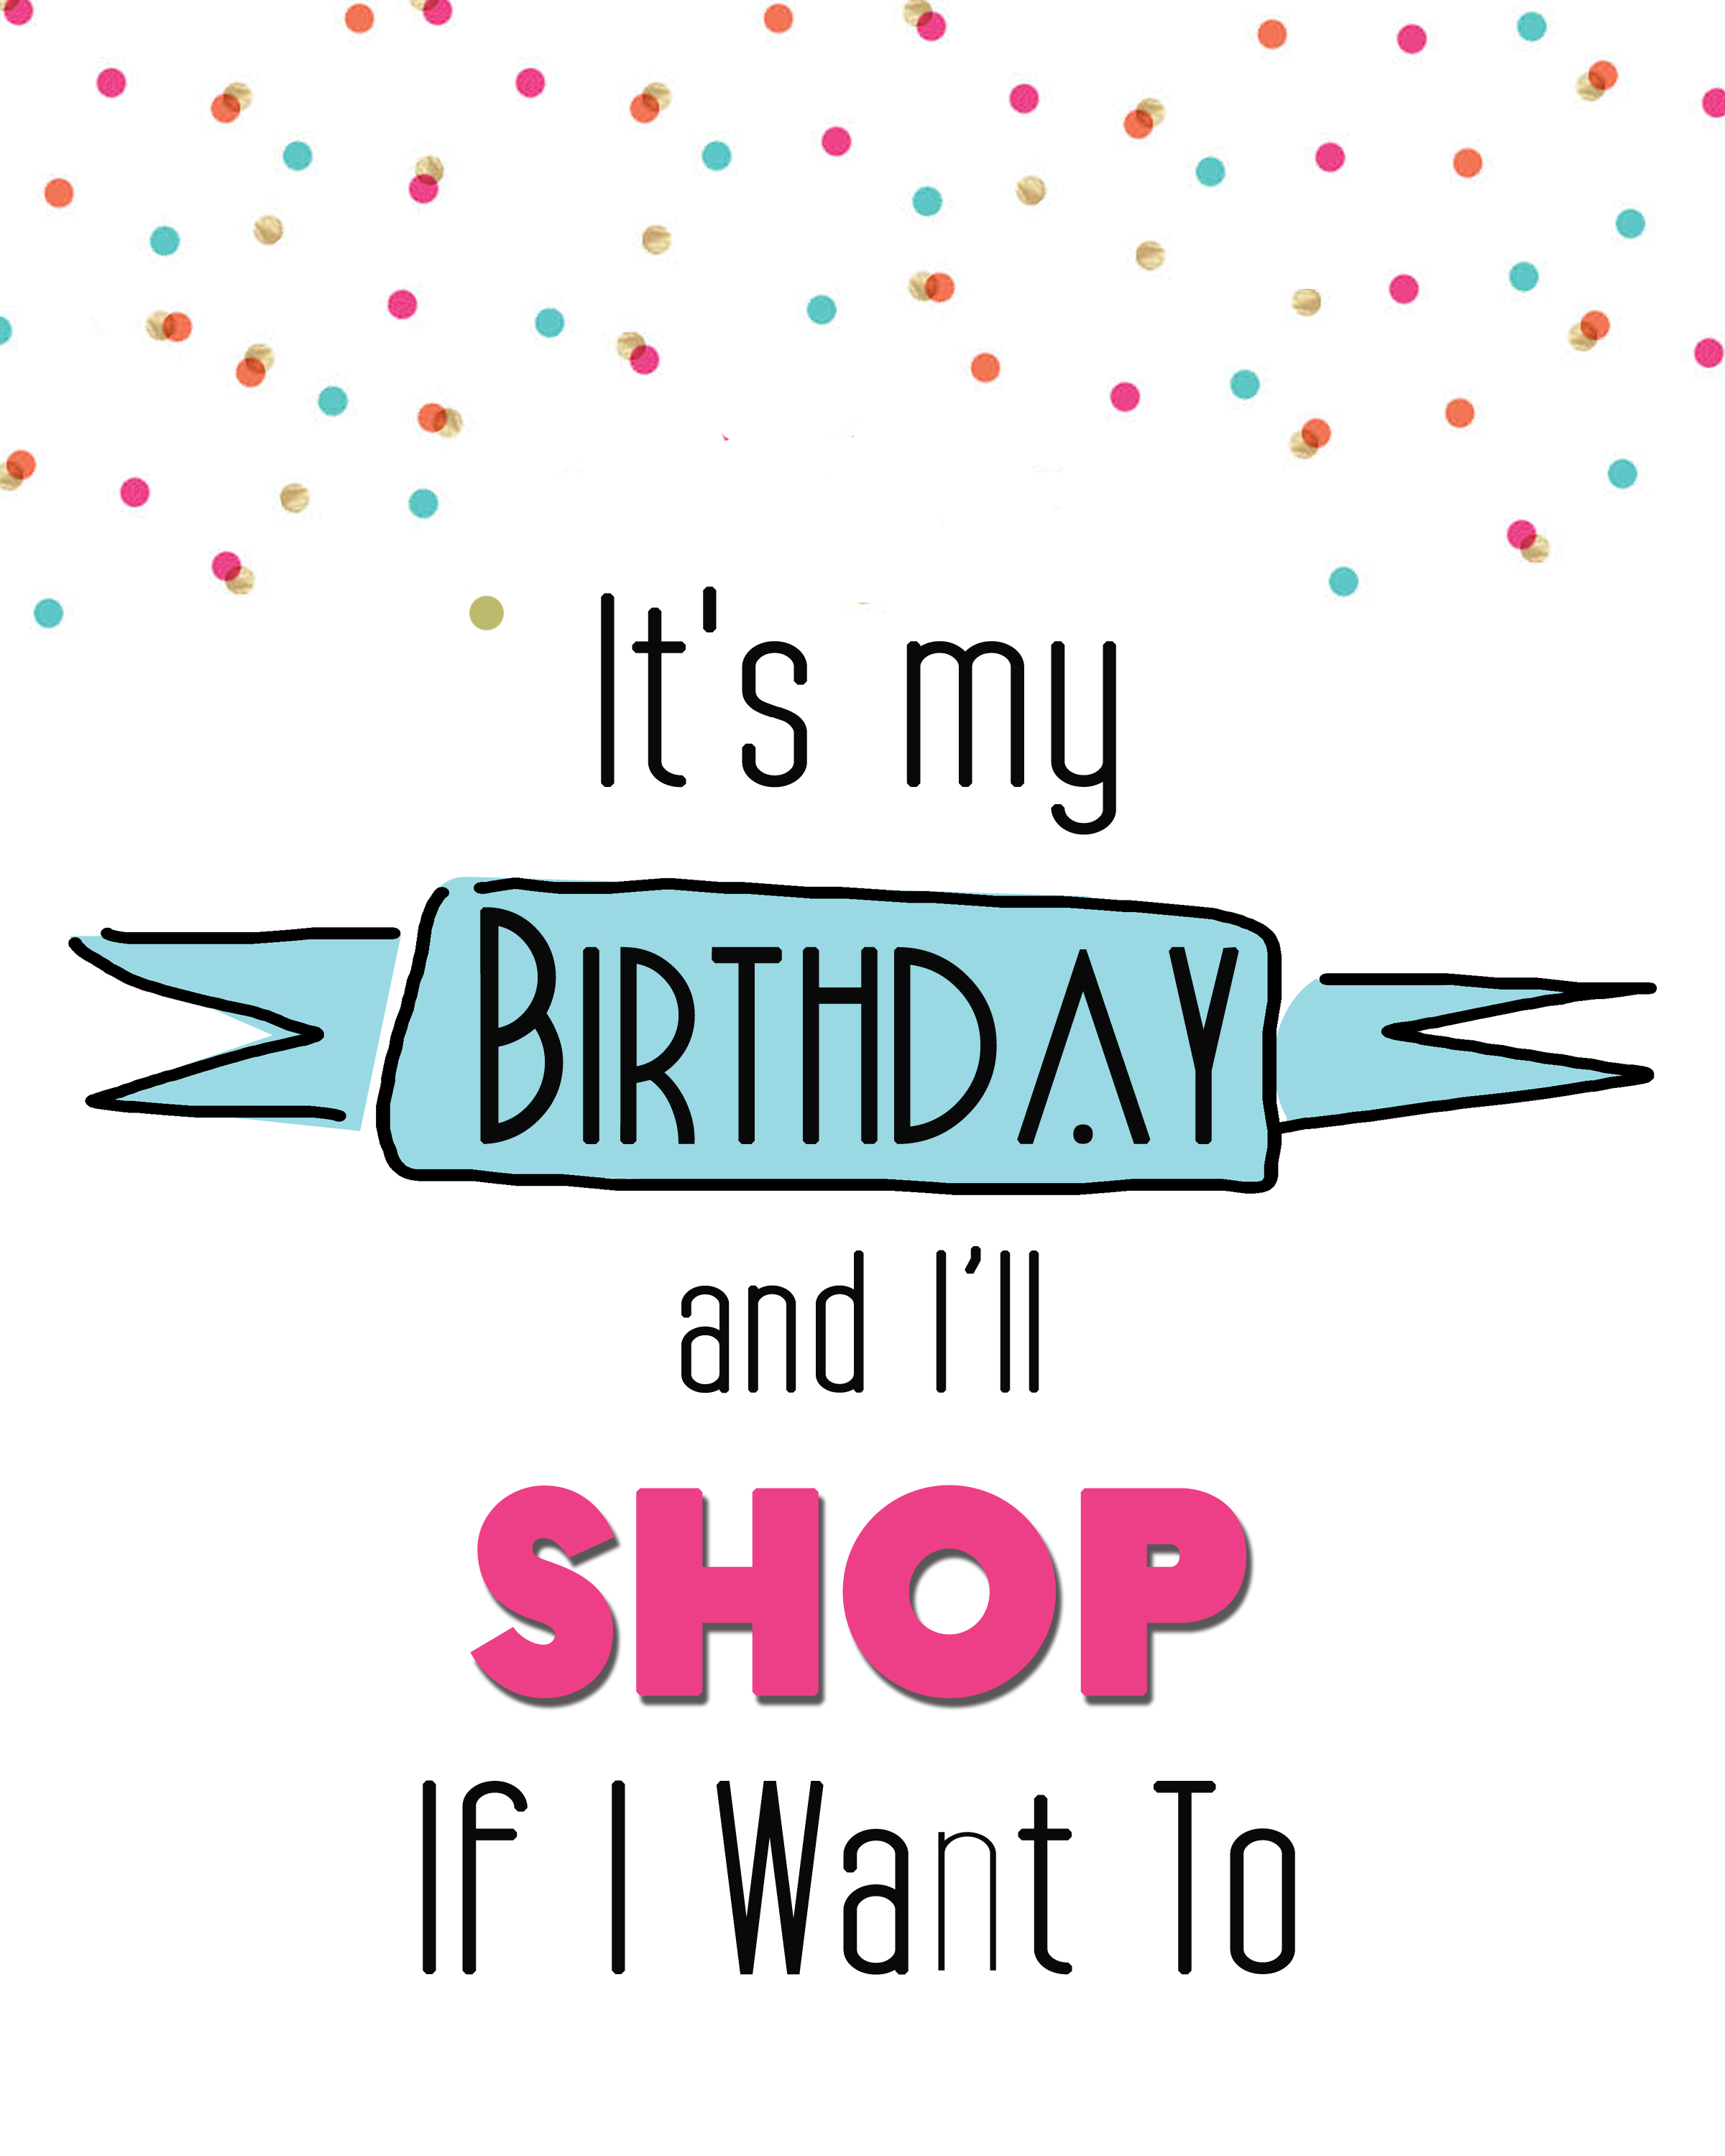 Its my birthday printable cards 8x10s over the big moon download the its my bday shop printable bookmarktalkfo Choice Image